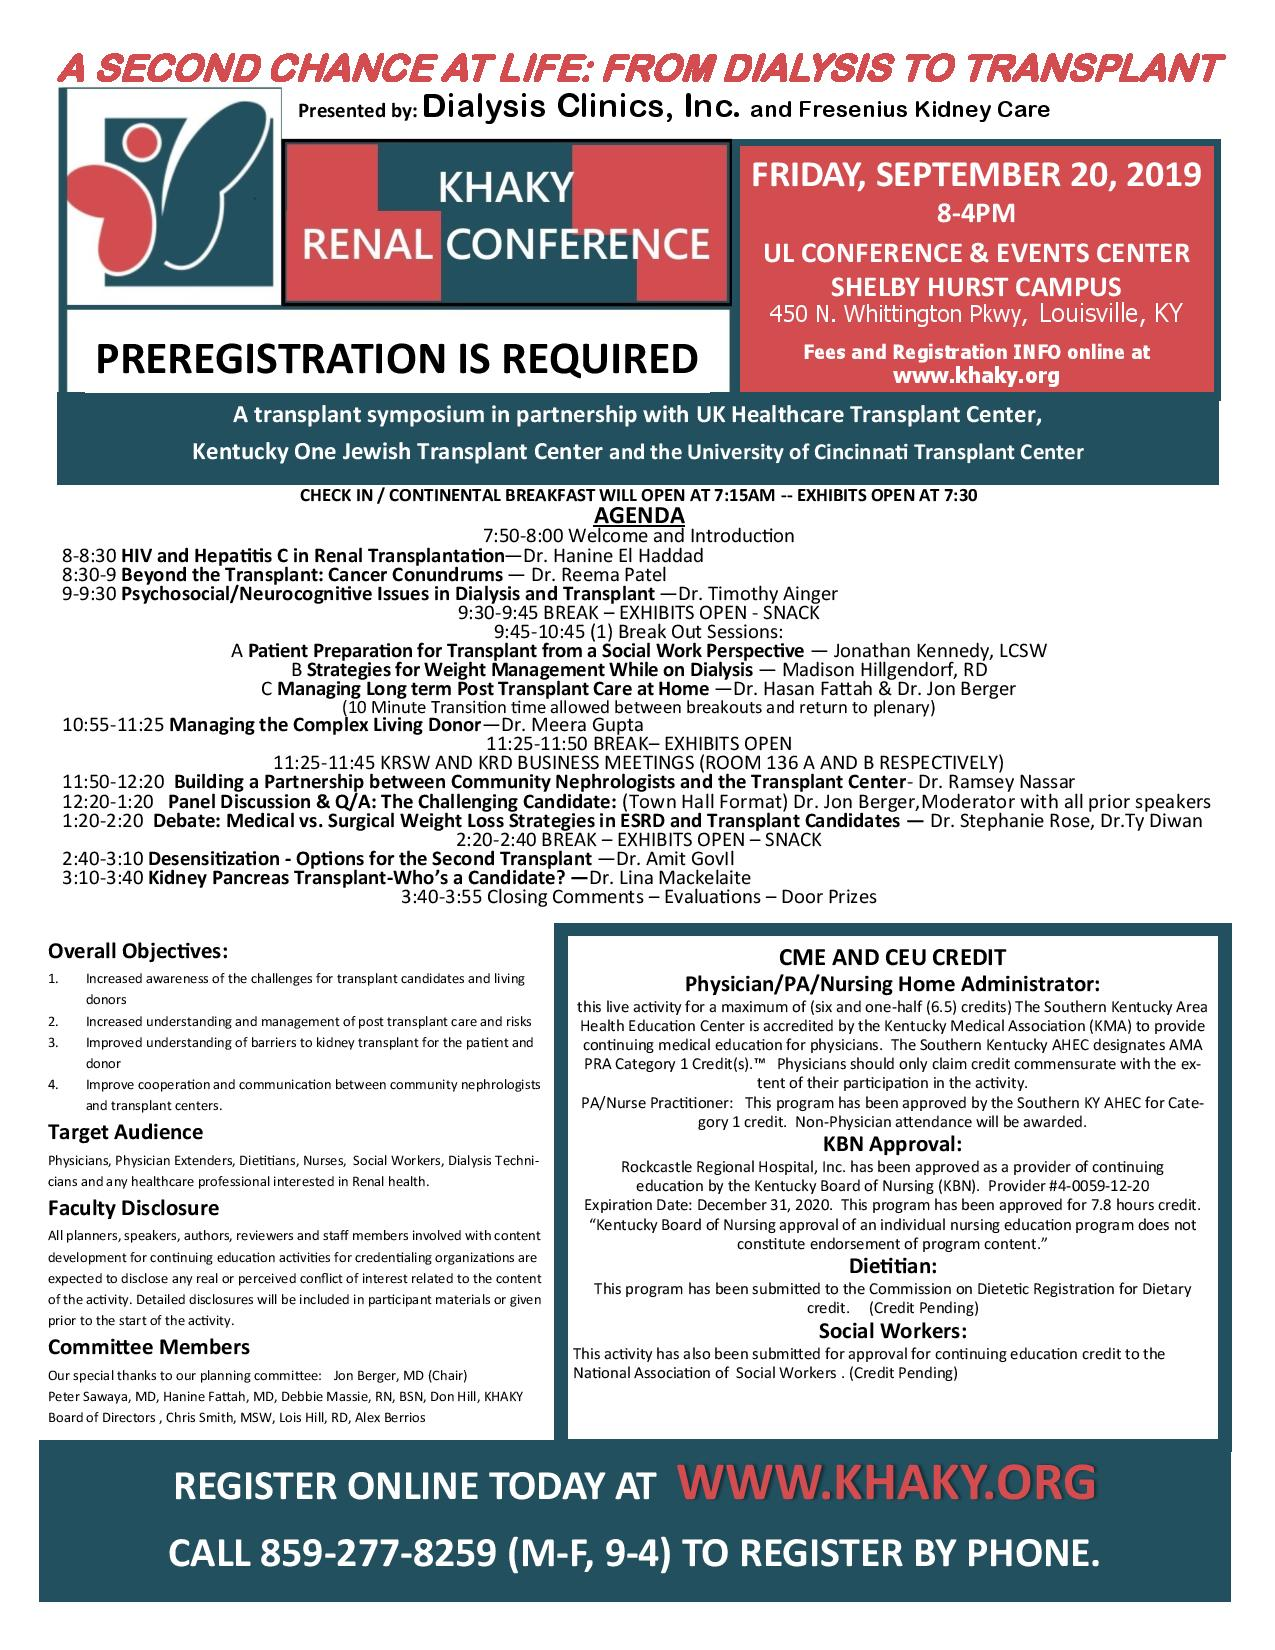 Renal Conference Flyer